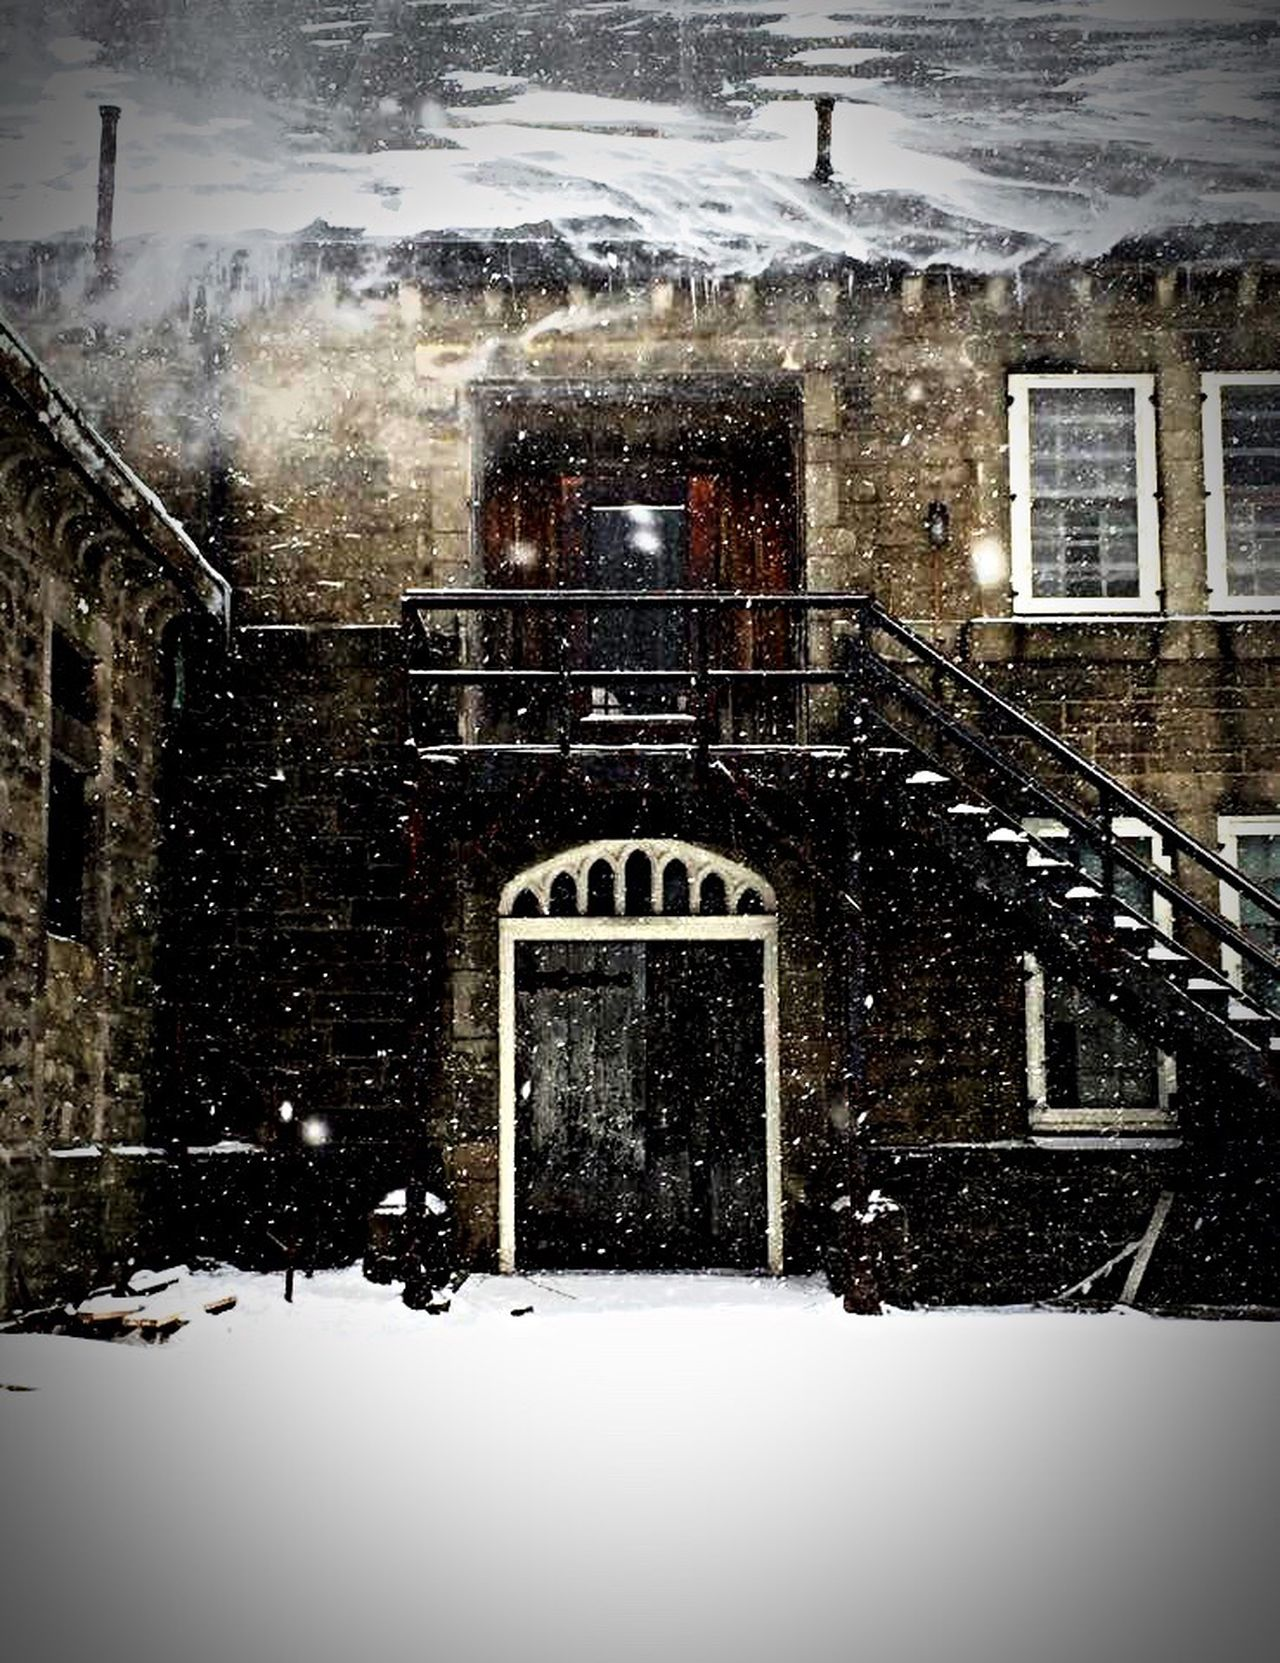 Old Prison History Historical Building Vintage Philadelphia Eastern State Penitentiary Derilict Building Decrepit Architecture The Architect - 2016 EyeEm Awards Hidden Gems